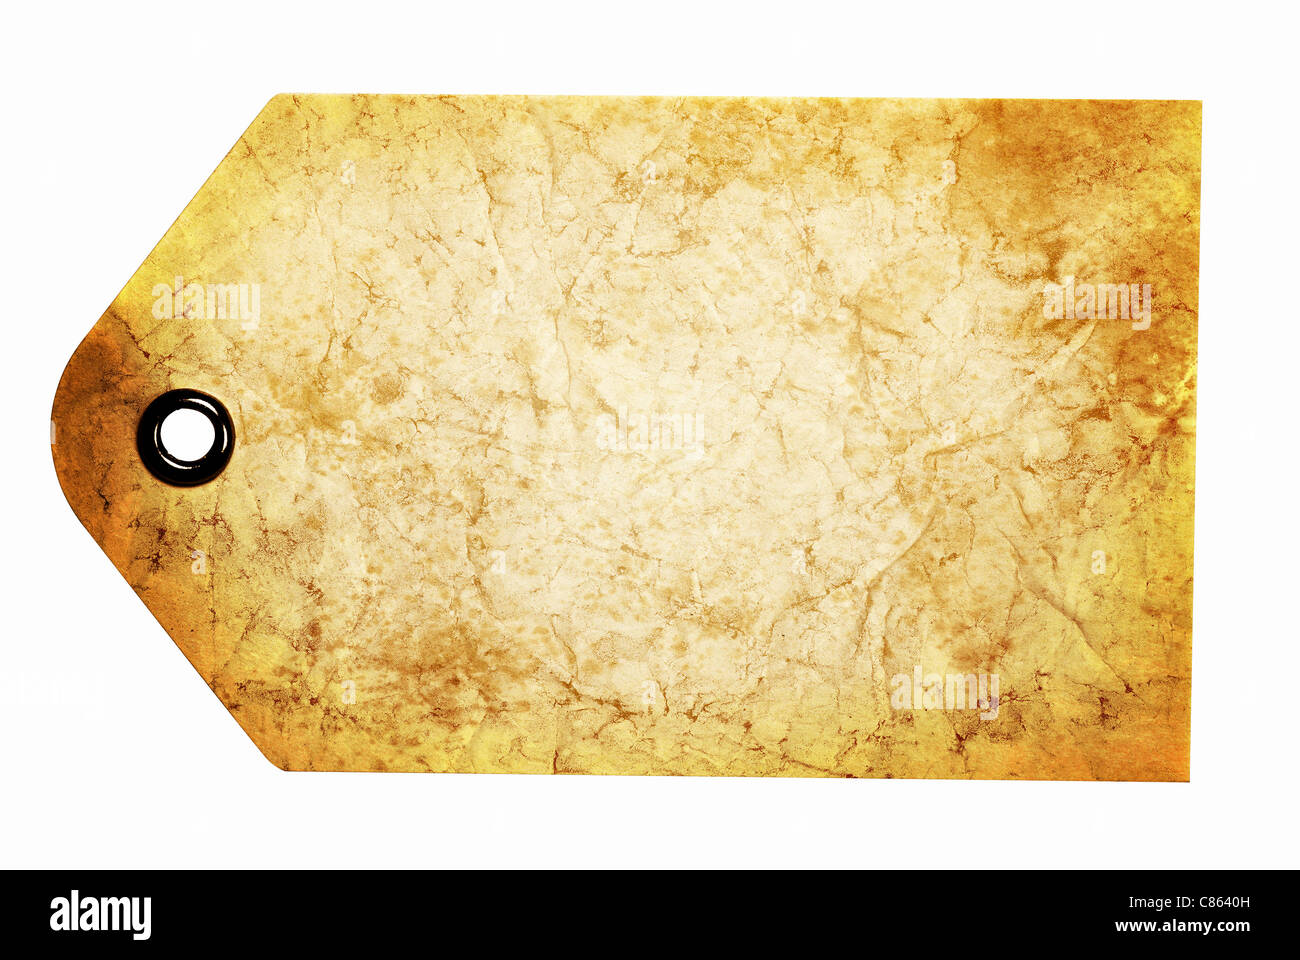 Blank antiqued beige gift tag isolated on a white background with clipping path - Stock Image